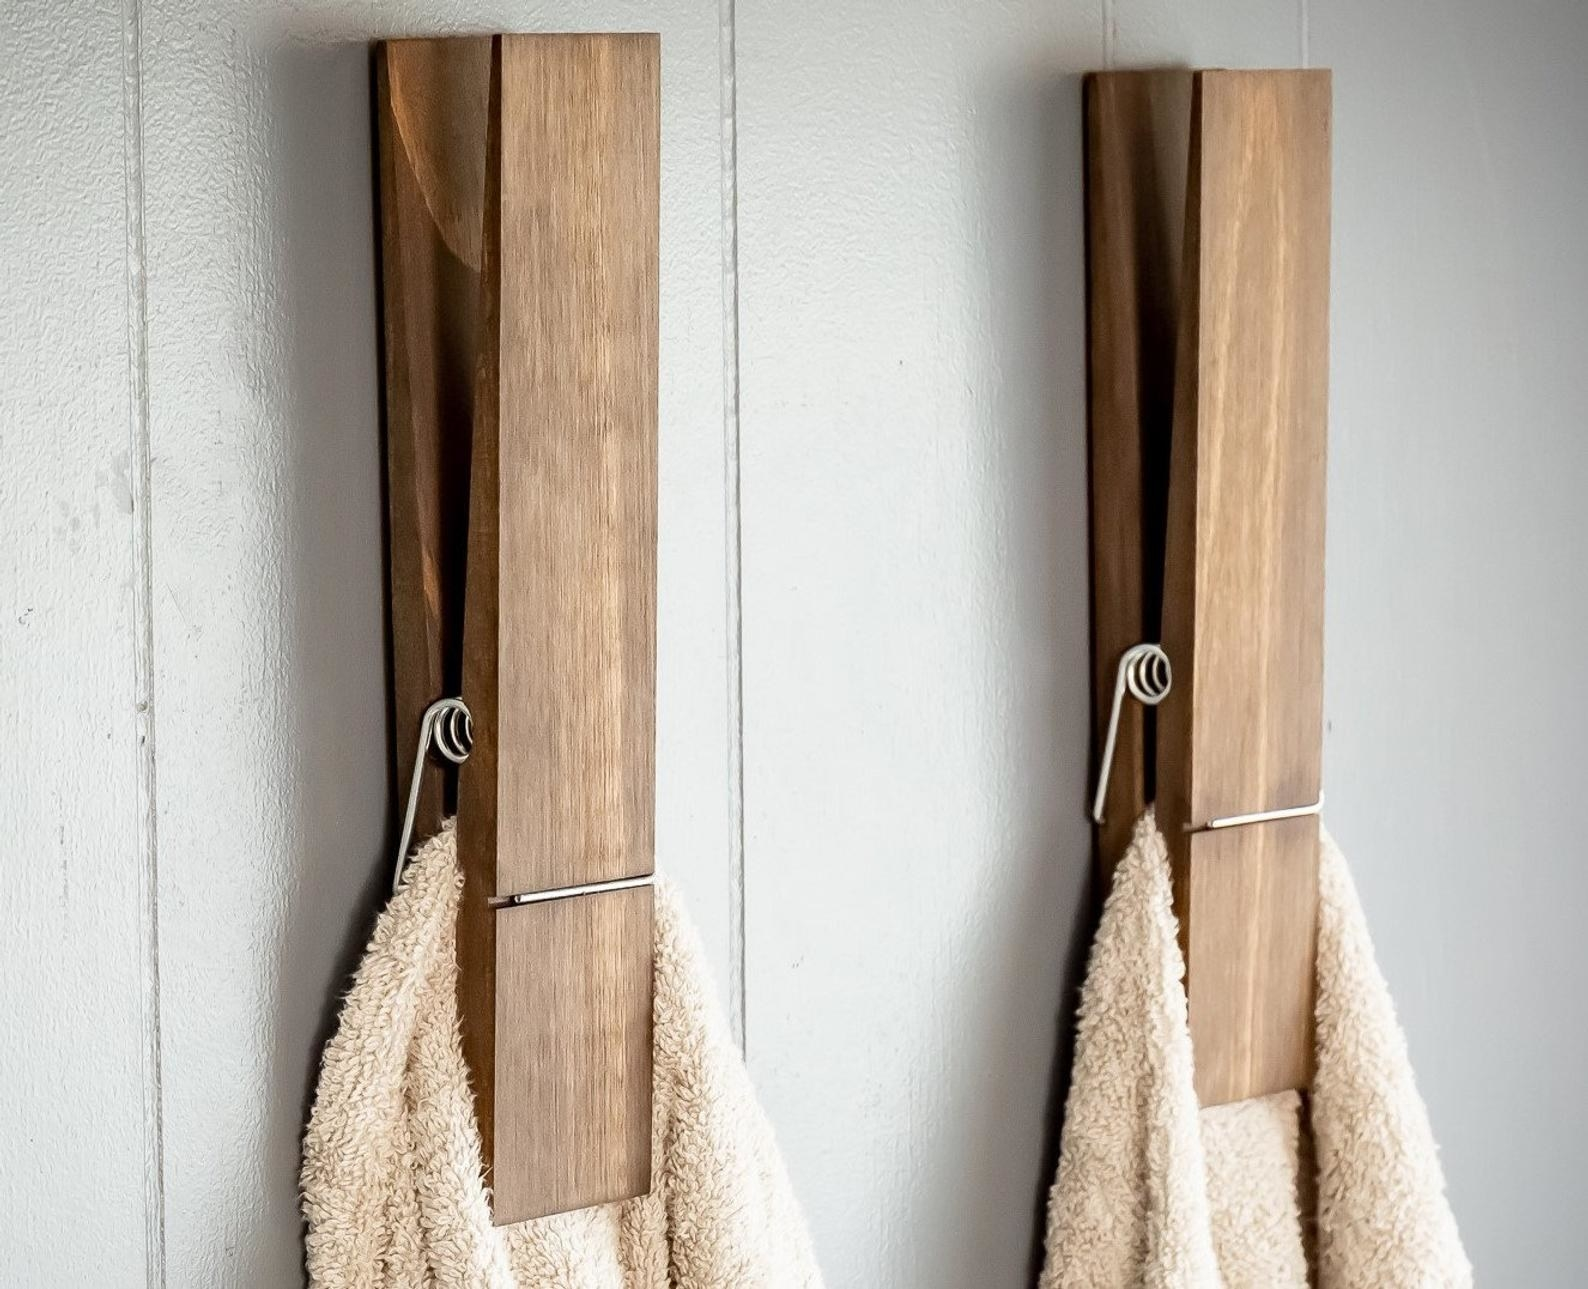 two jumbo clothespin towel holders mounted to a wall, each holding a beige towel